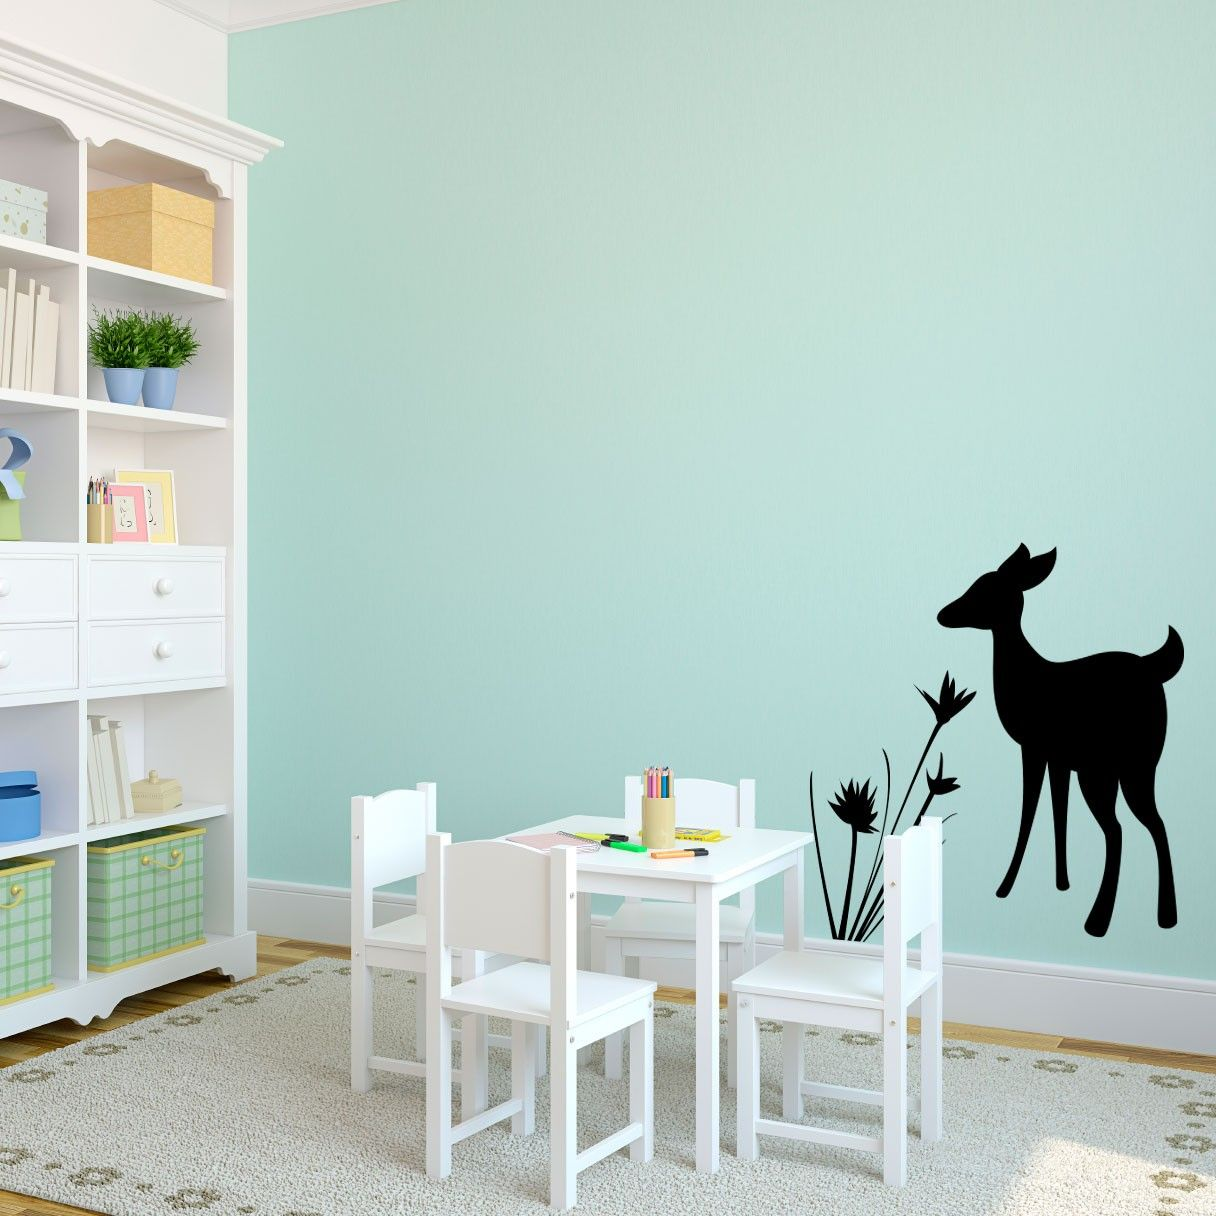 Baby Deer Fawn Kids Rooms Vinyl Wall Art Decal For Kids Rooms - Custom vinyl wall decals deer